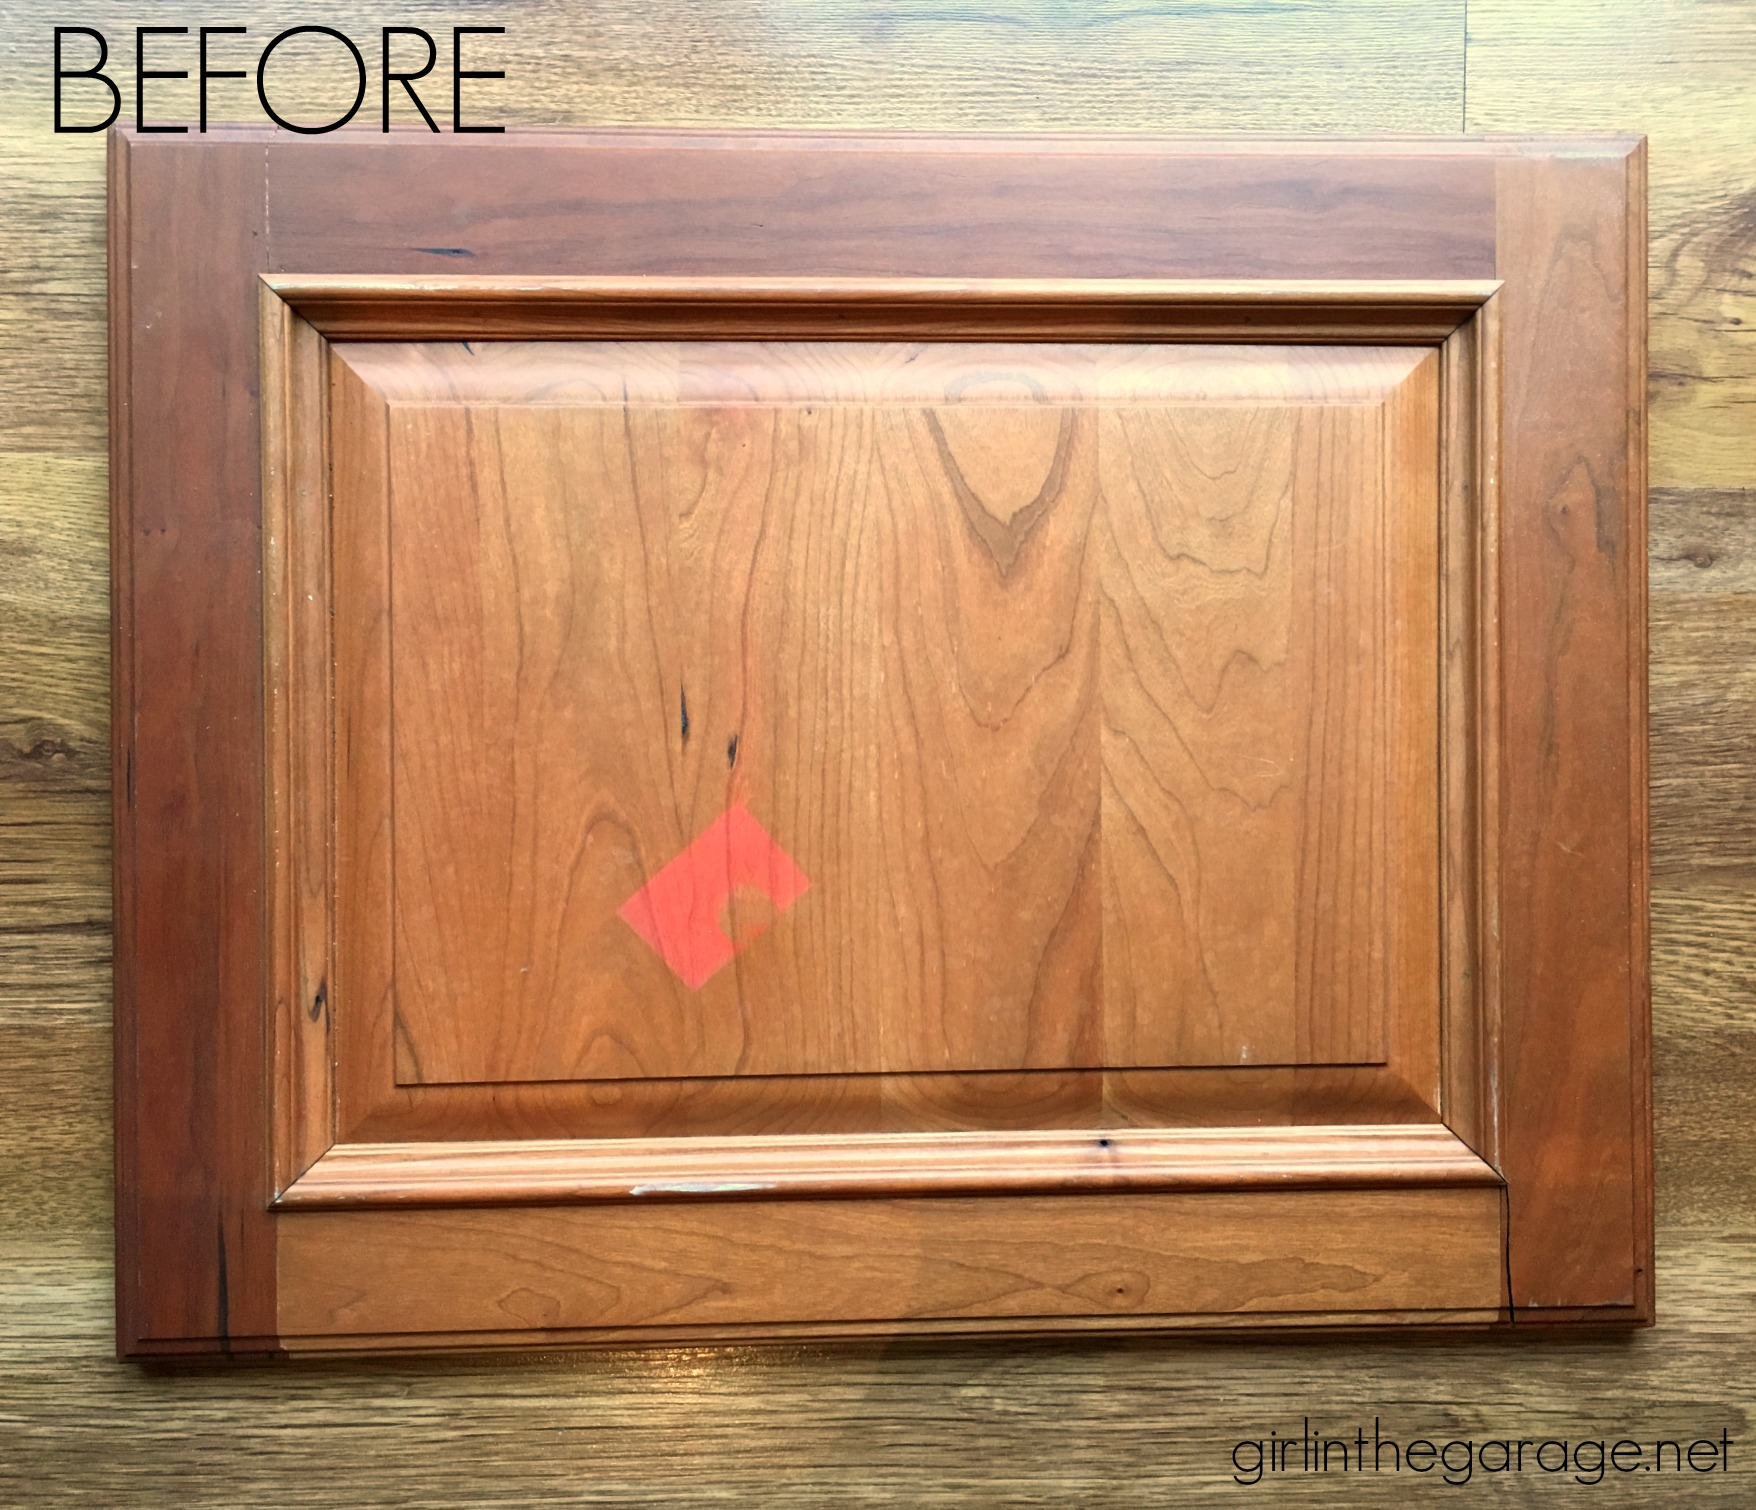 DIY Repurposed Cabinet Door - Upcycled Trash to Treasure Makeover by Girl in the Garage